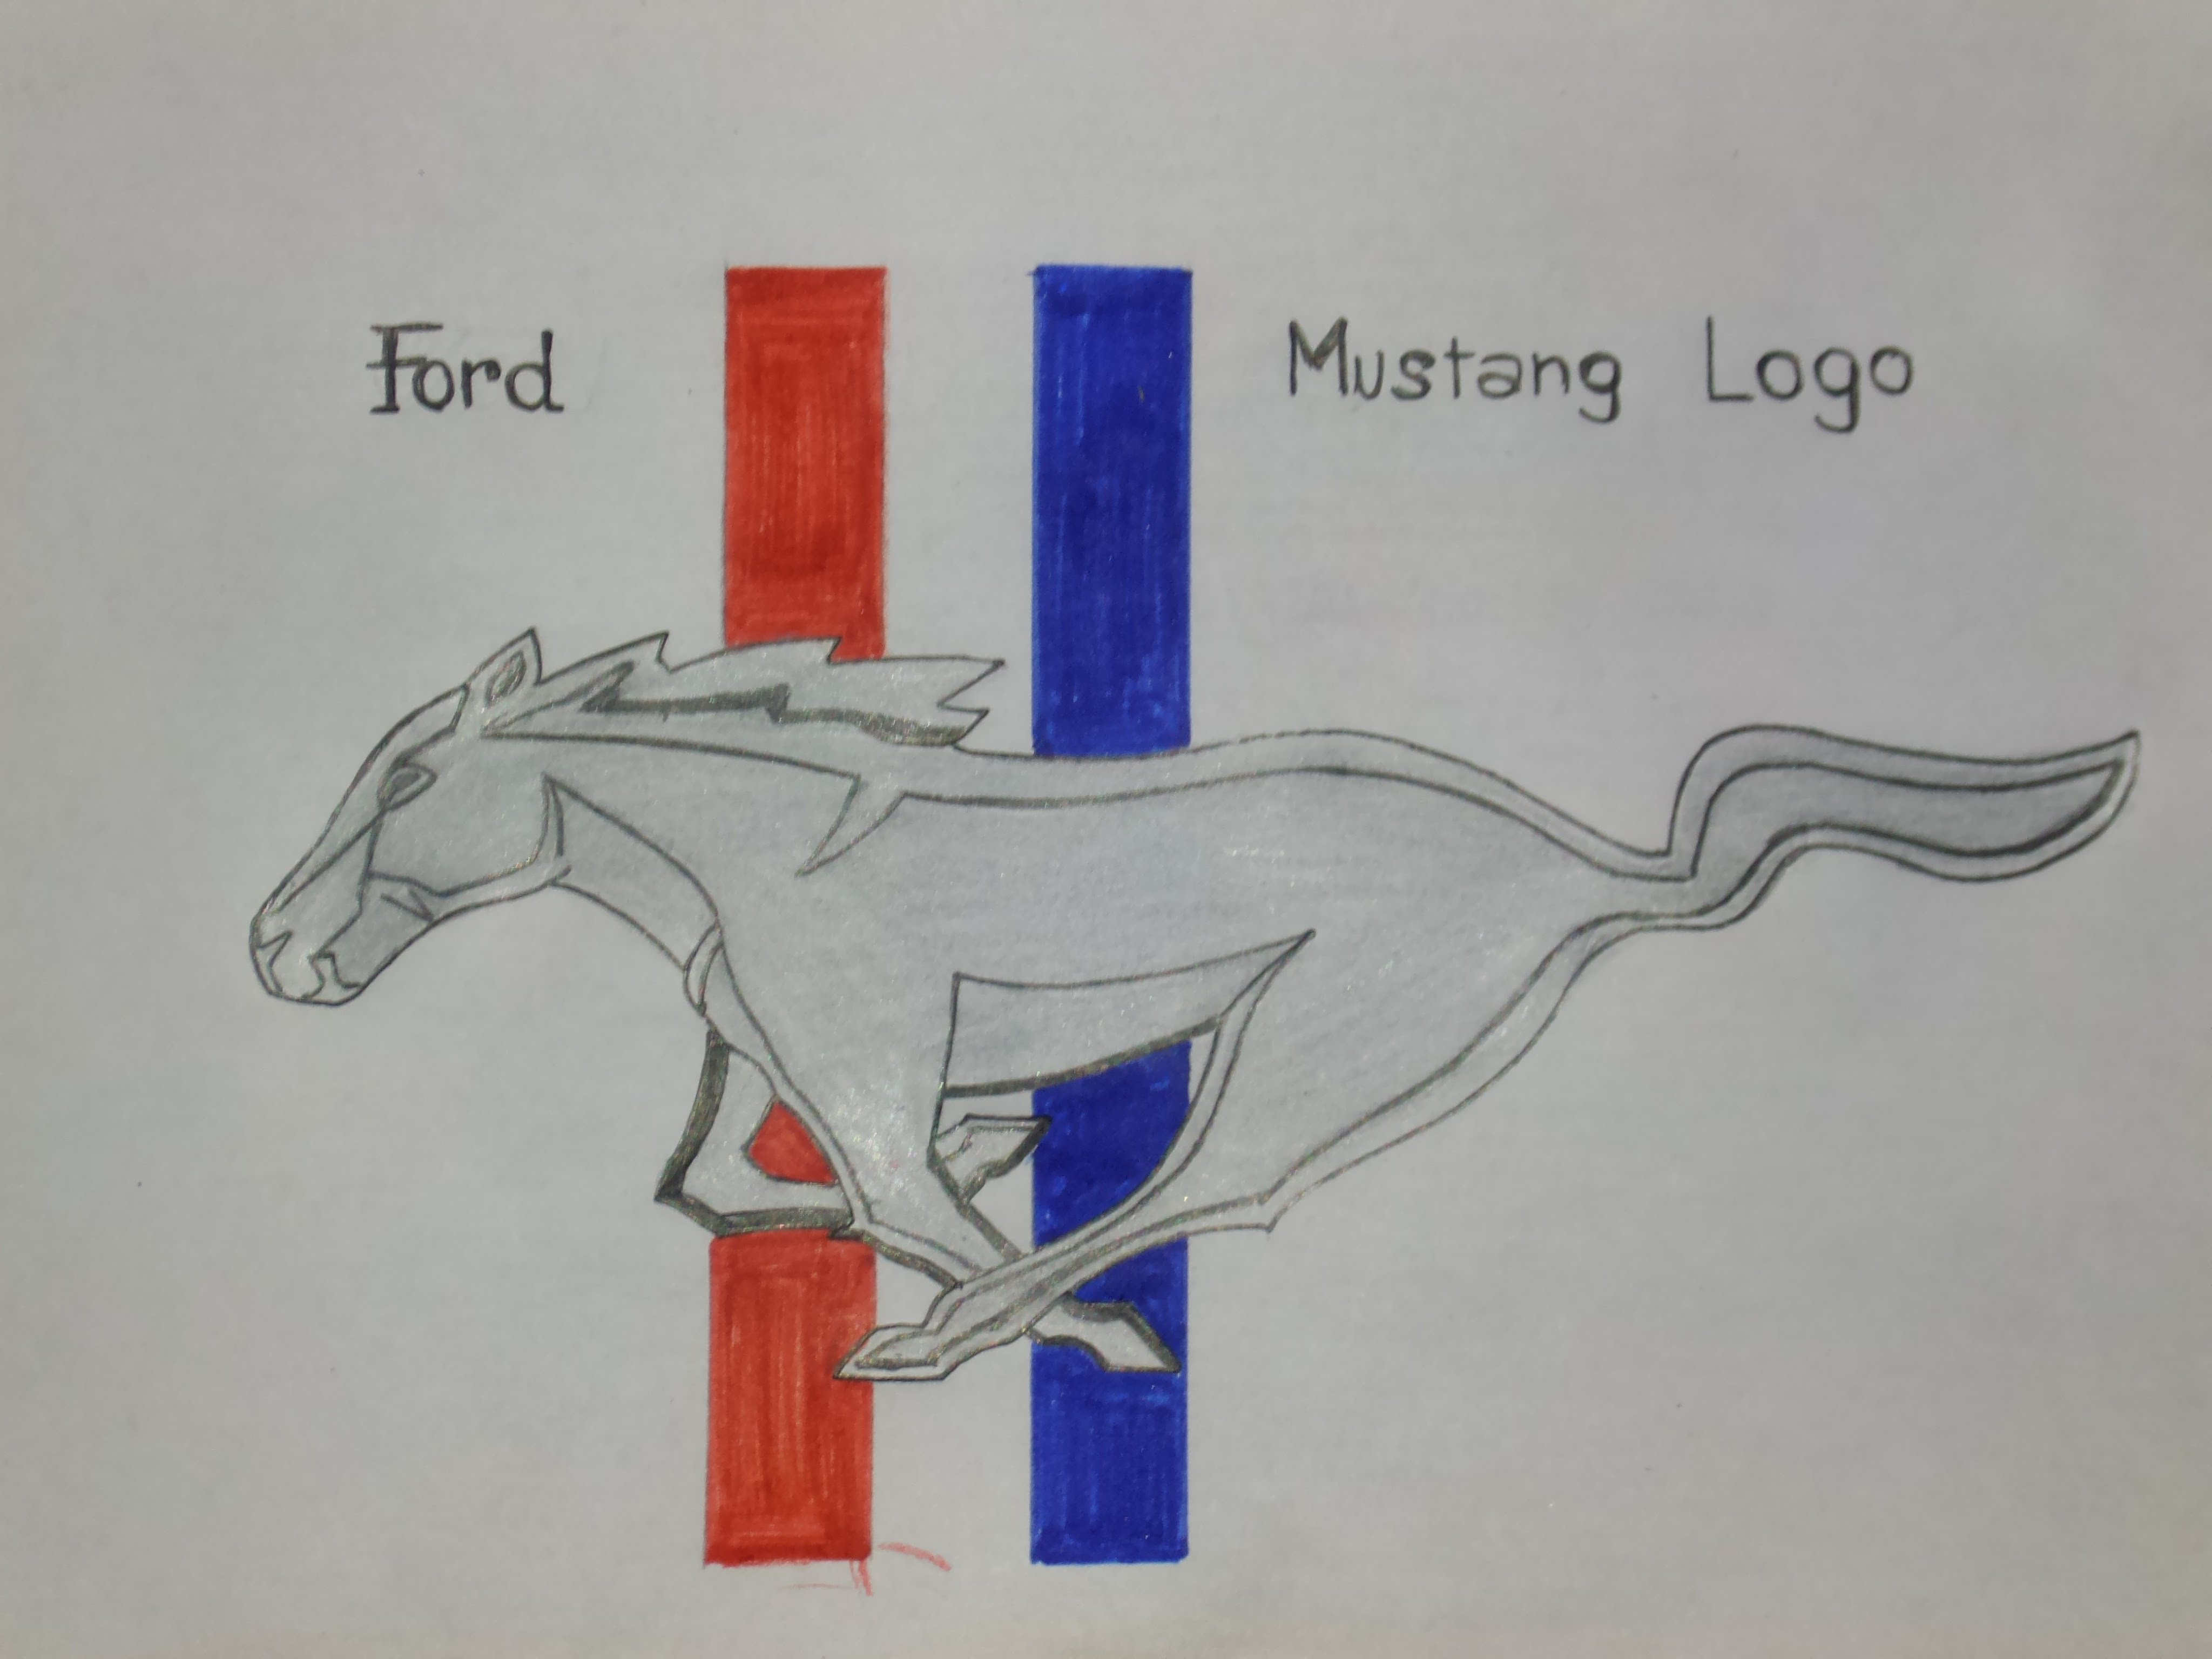 4096x3072 Ford Mustang Logo Drawing